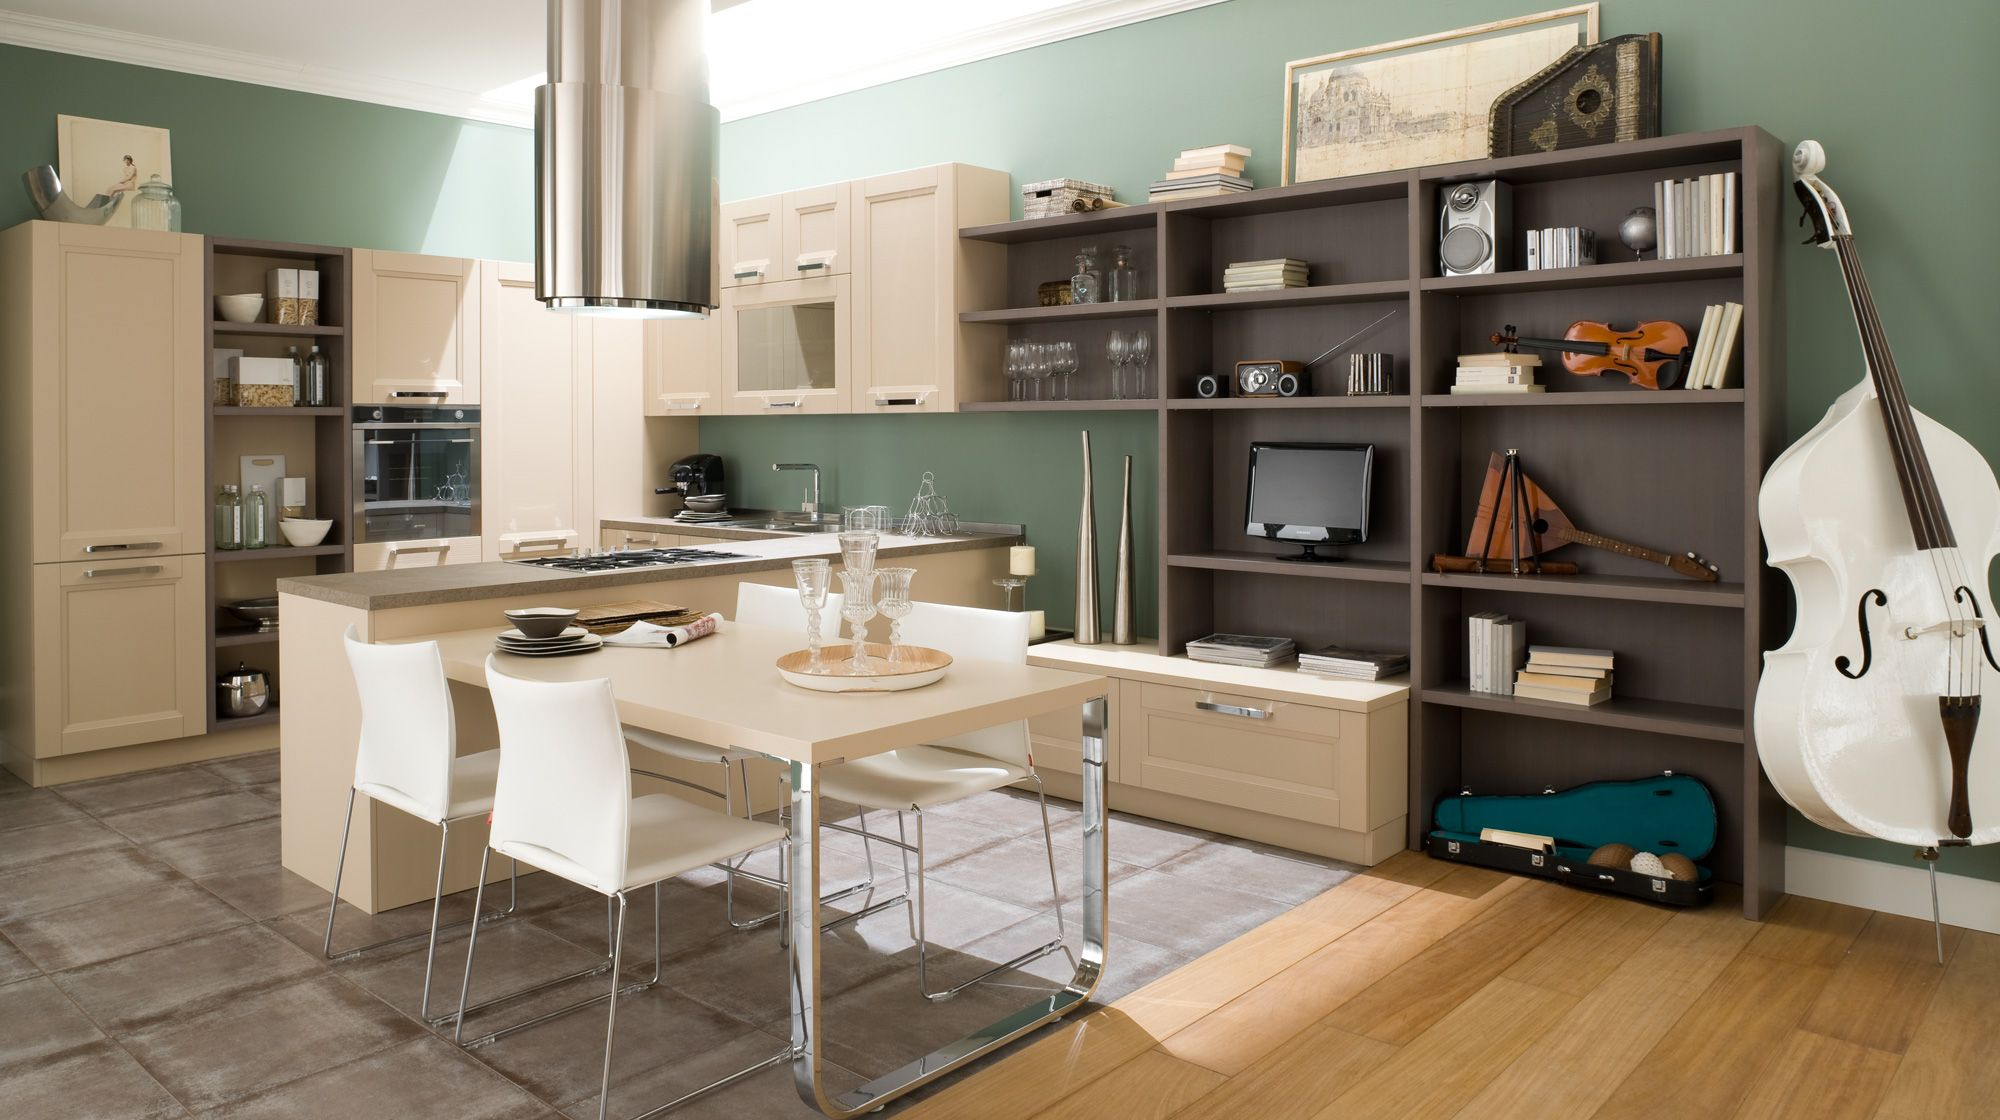 A Lot Of Functional Elements And Furnishings At The Kitchen In Vintage Style Dark